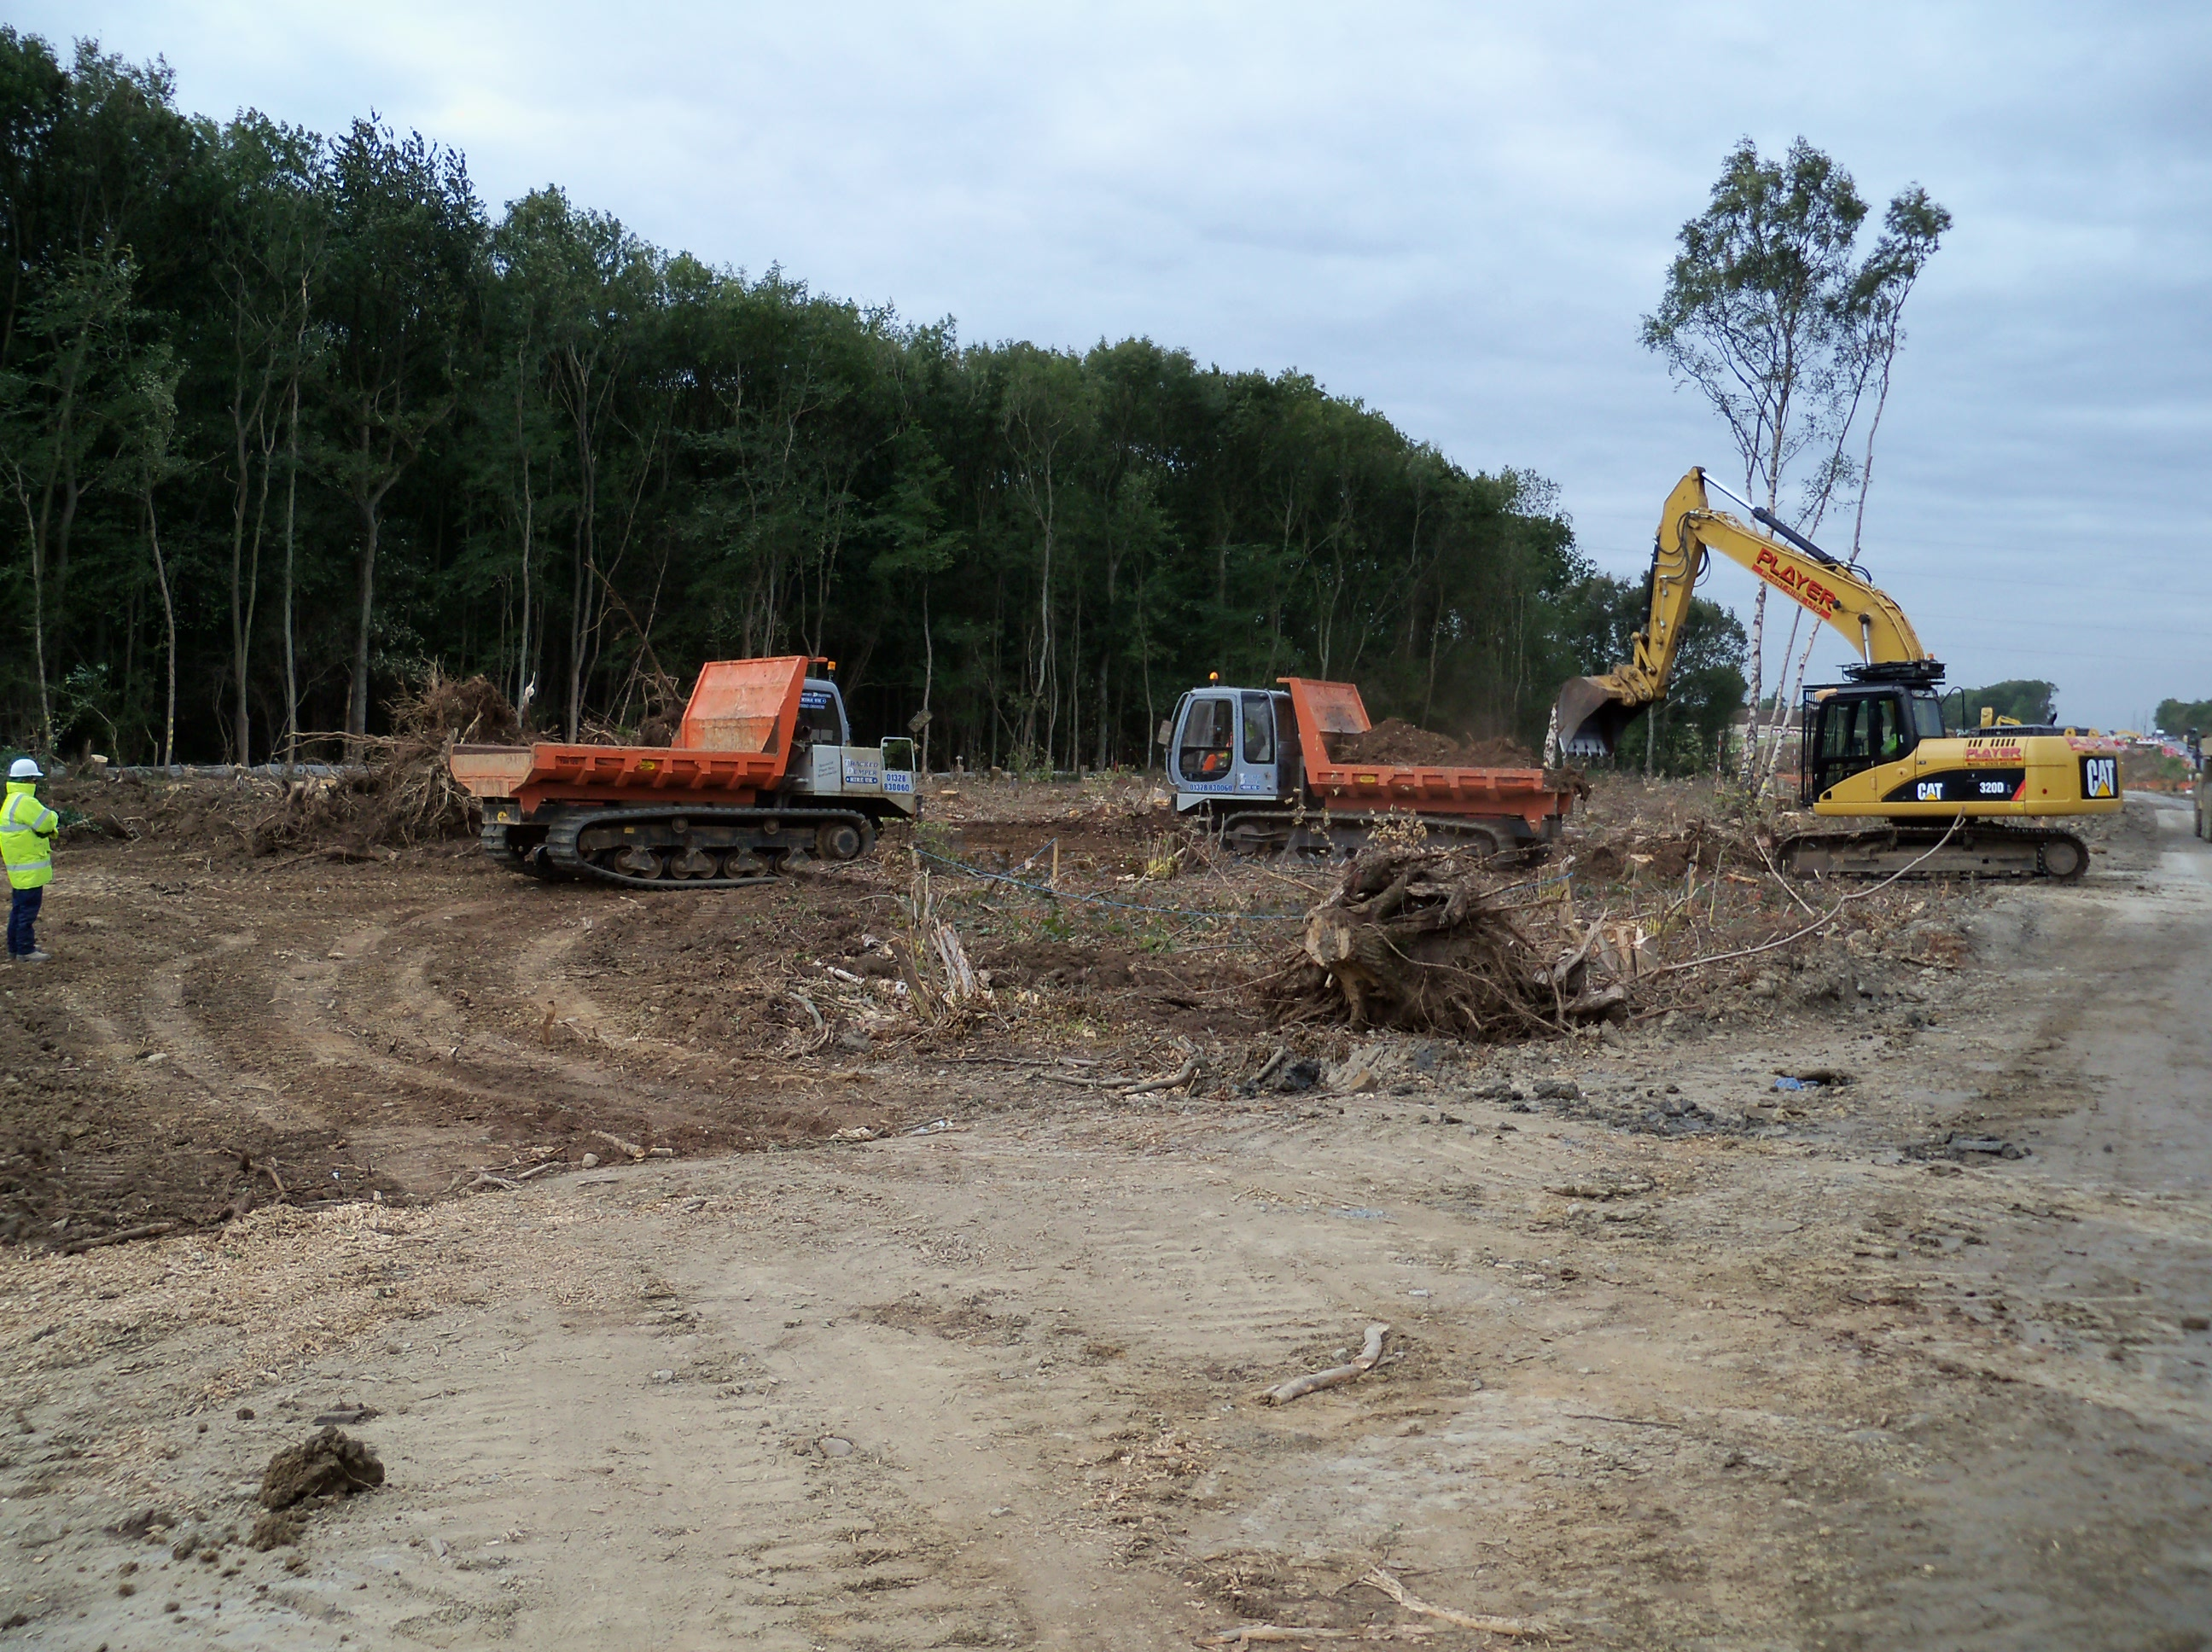 Low ground pressure machinery to transport woodland components